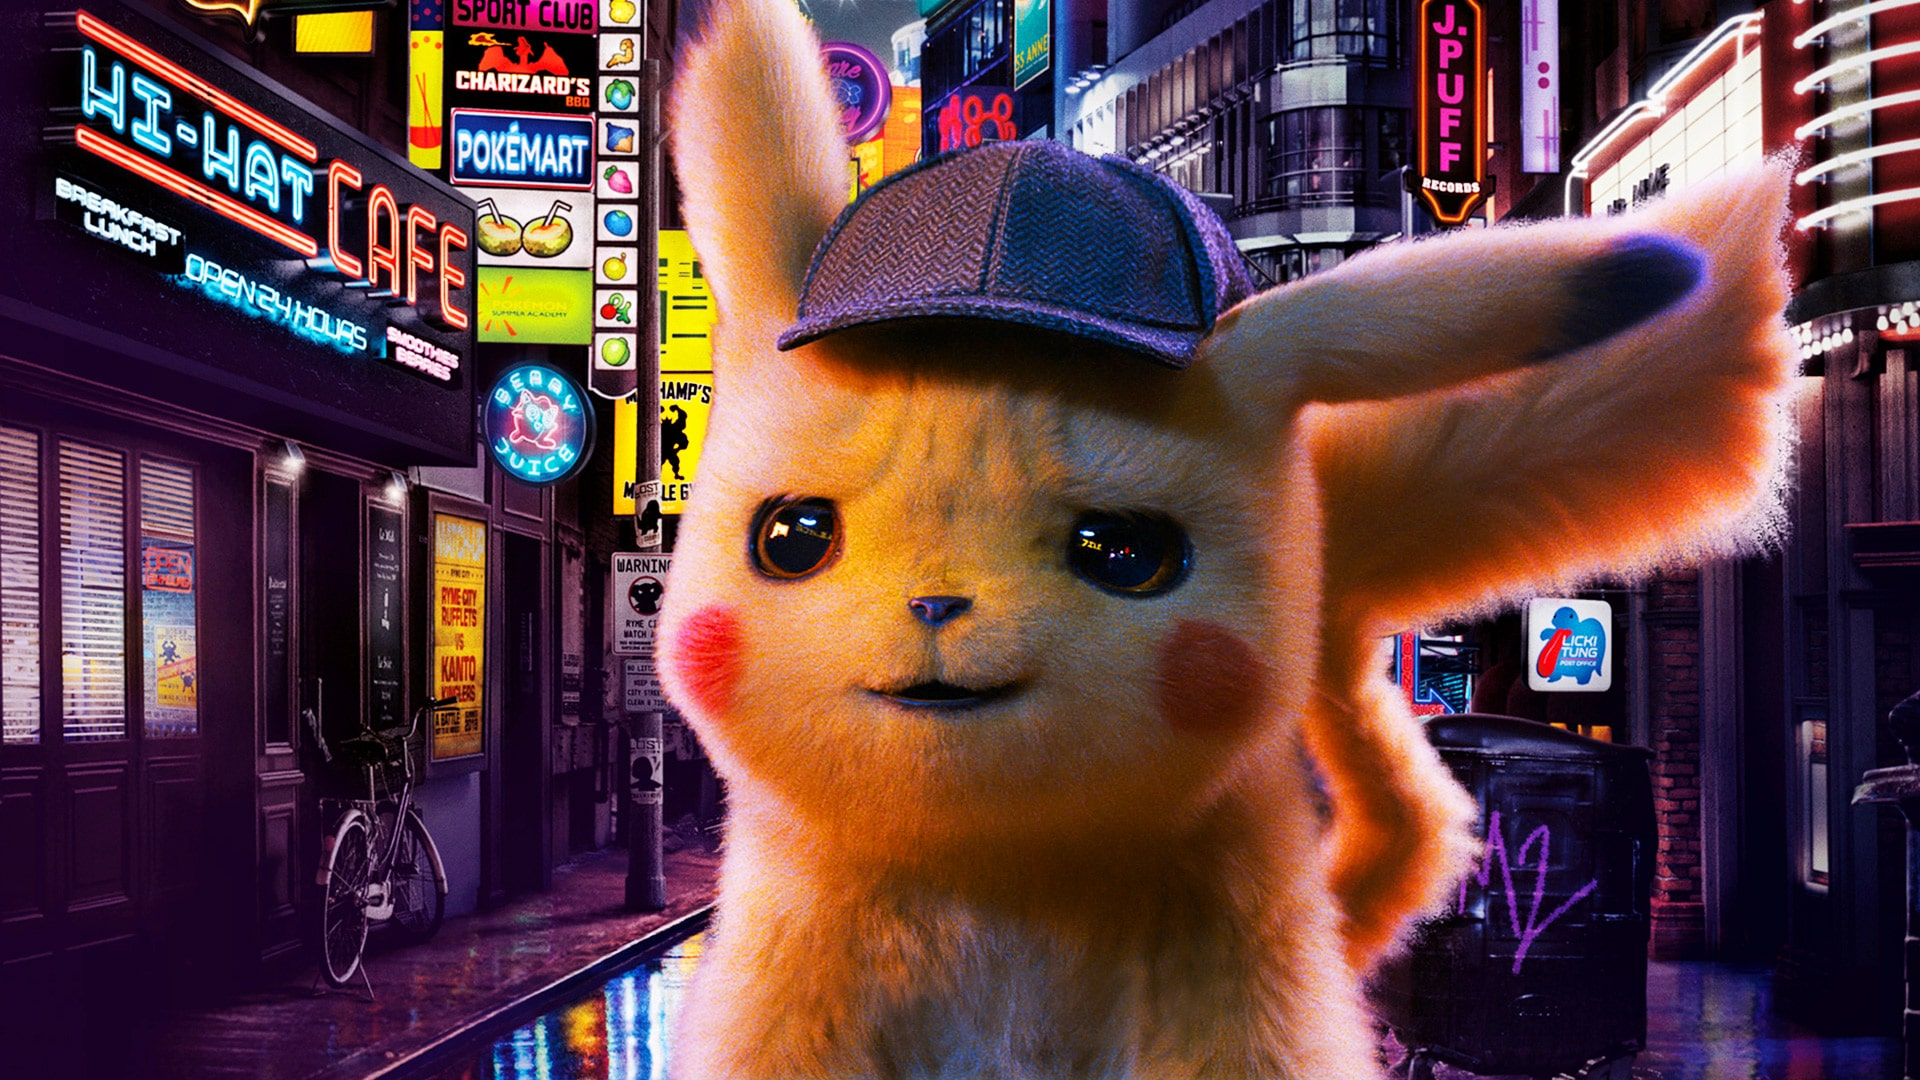 Detective Pikachu Hd Wallpaper Kolpaper Awesome Free Hd Wallpapers